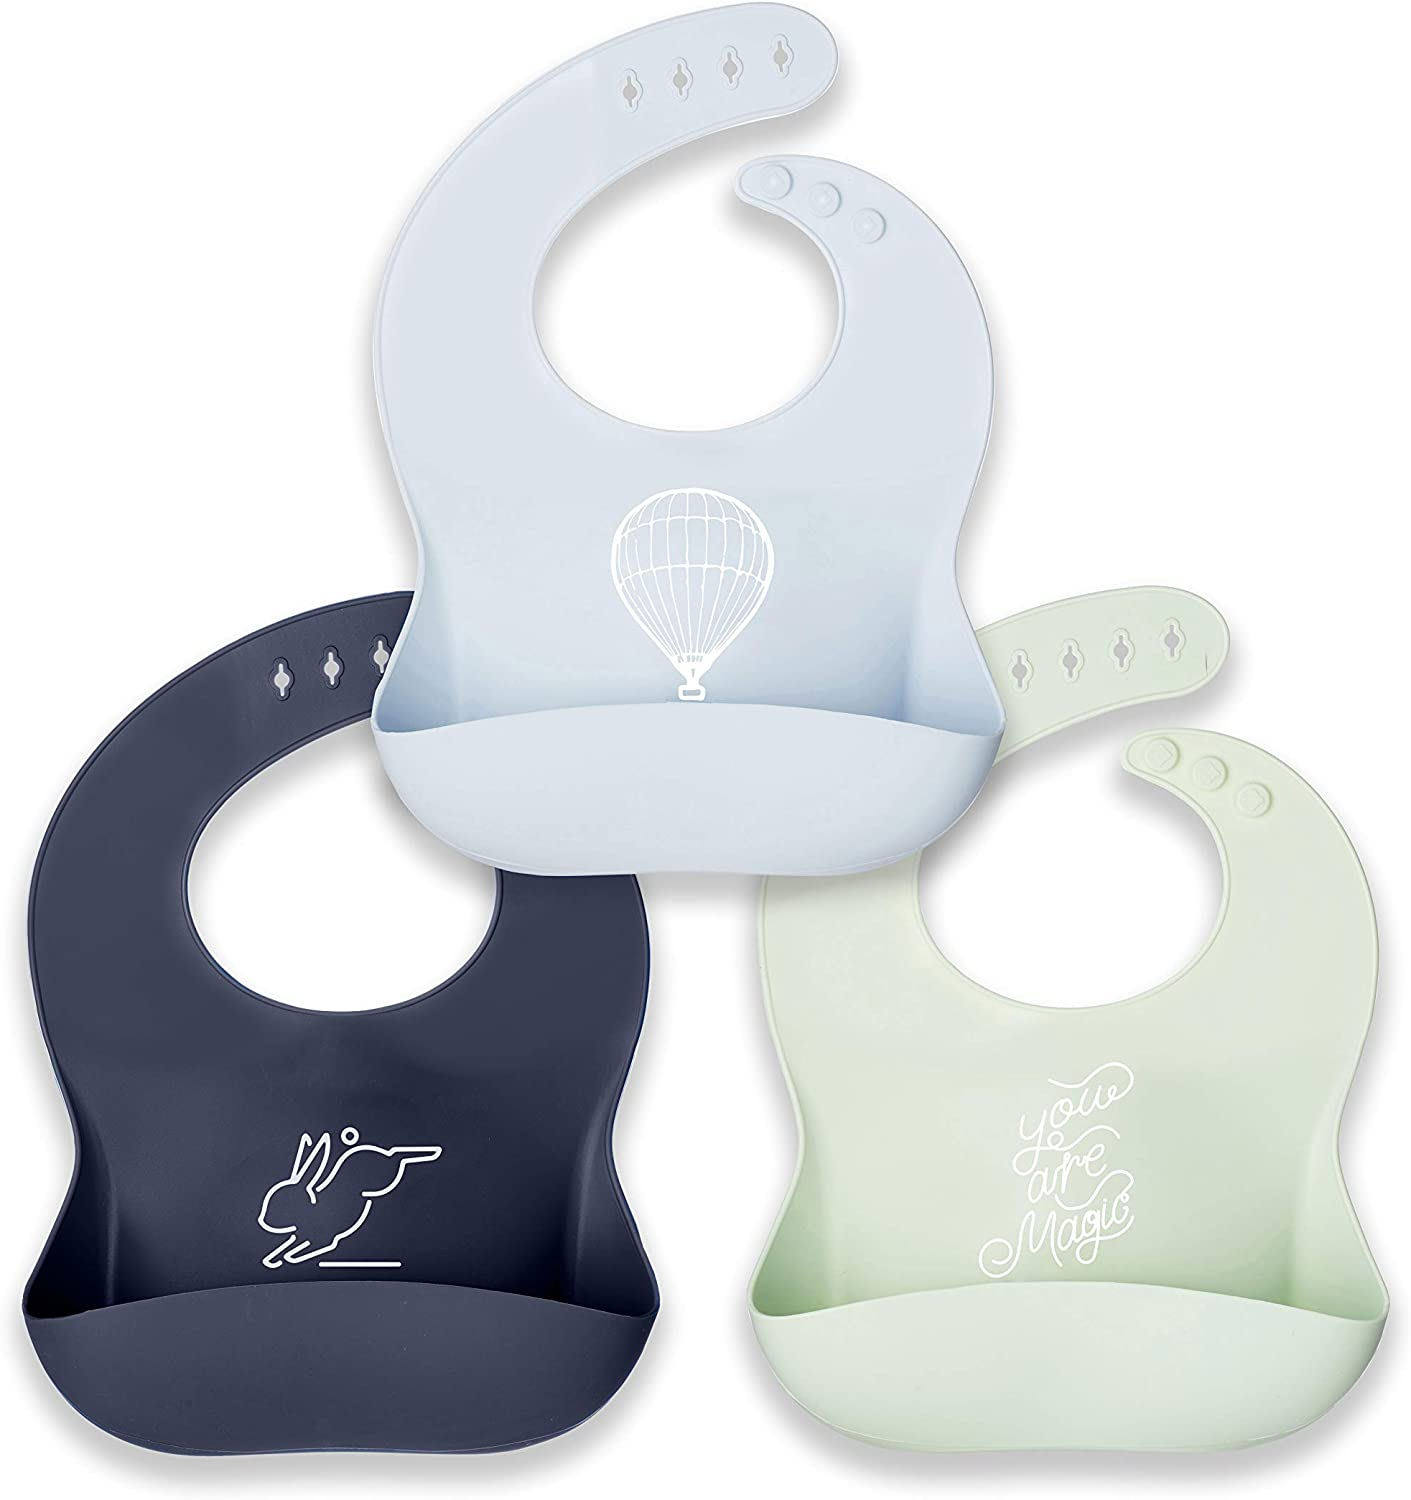 Silicone Baby Bibs, Food Catcher Pocket, Food Grade Material, Waterproof Toddler Bib, Easy to Clean & Wash